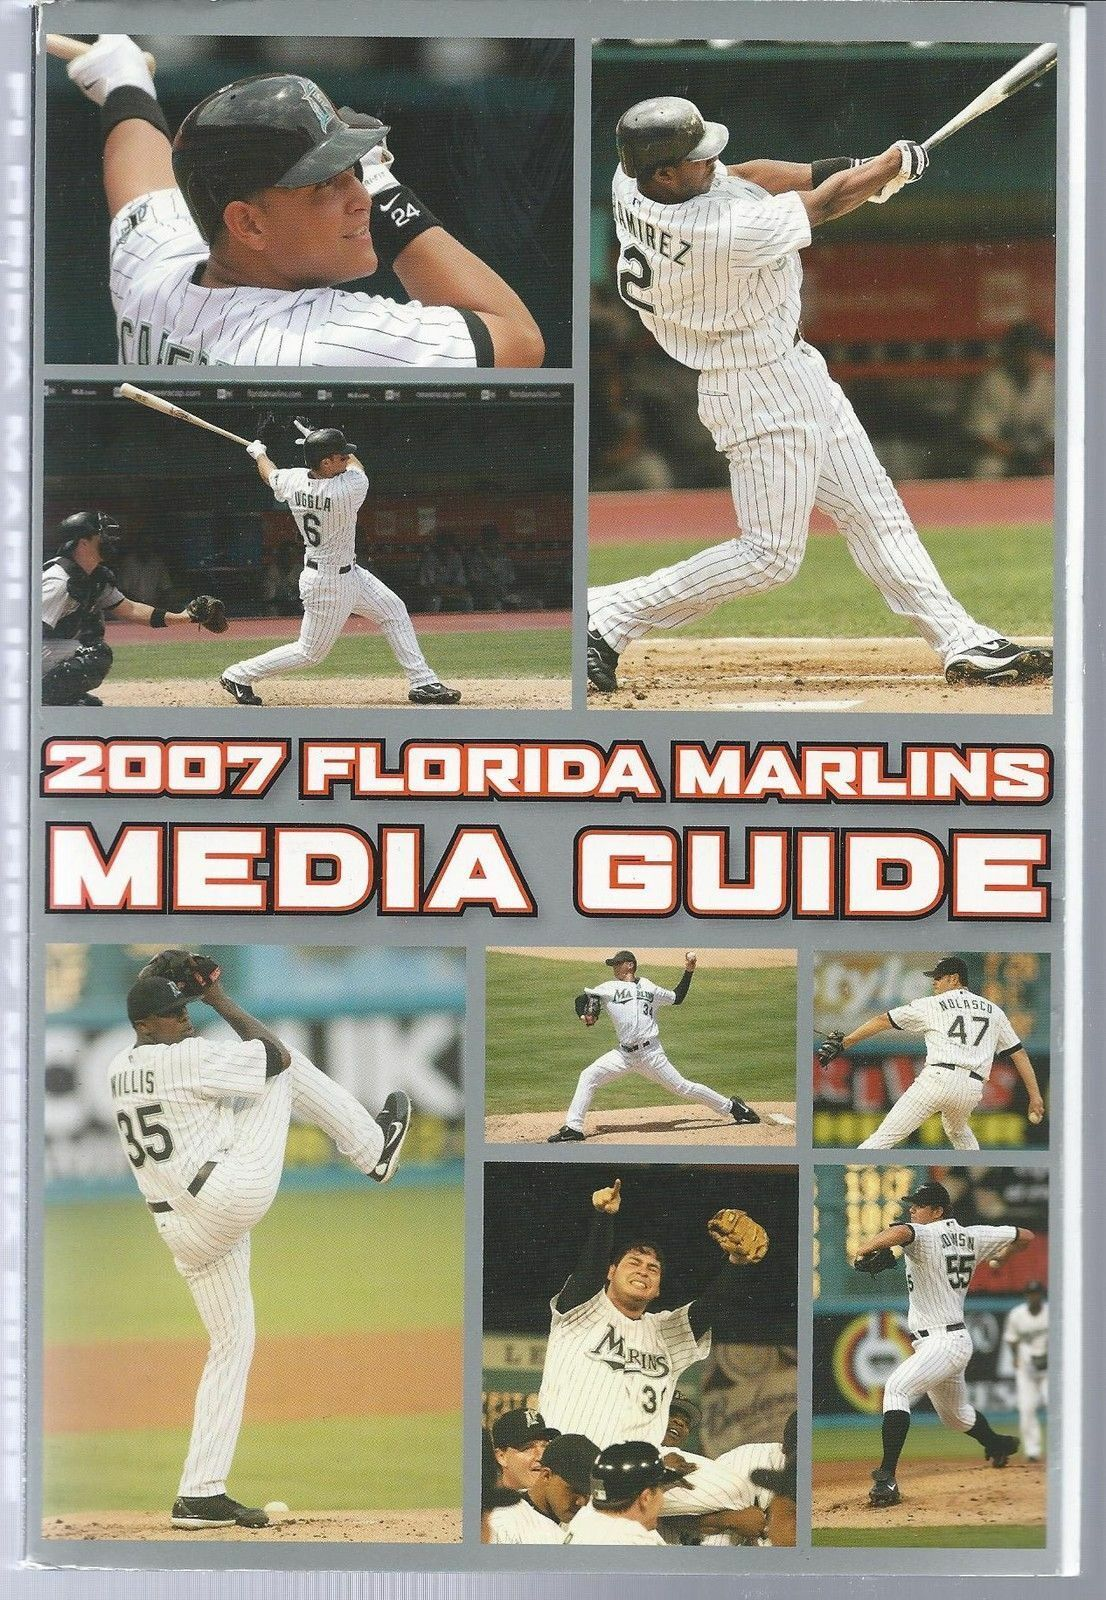 2007 Florida Marlins Baseball MLB Media Guide - Annual Player Information